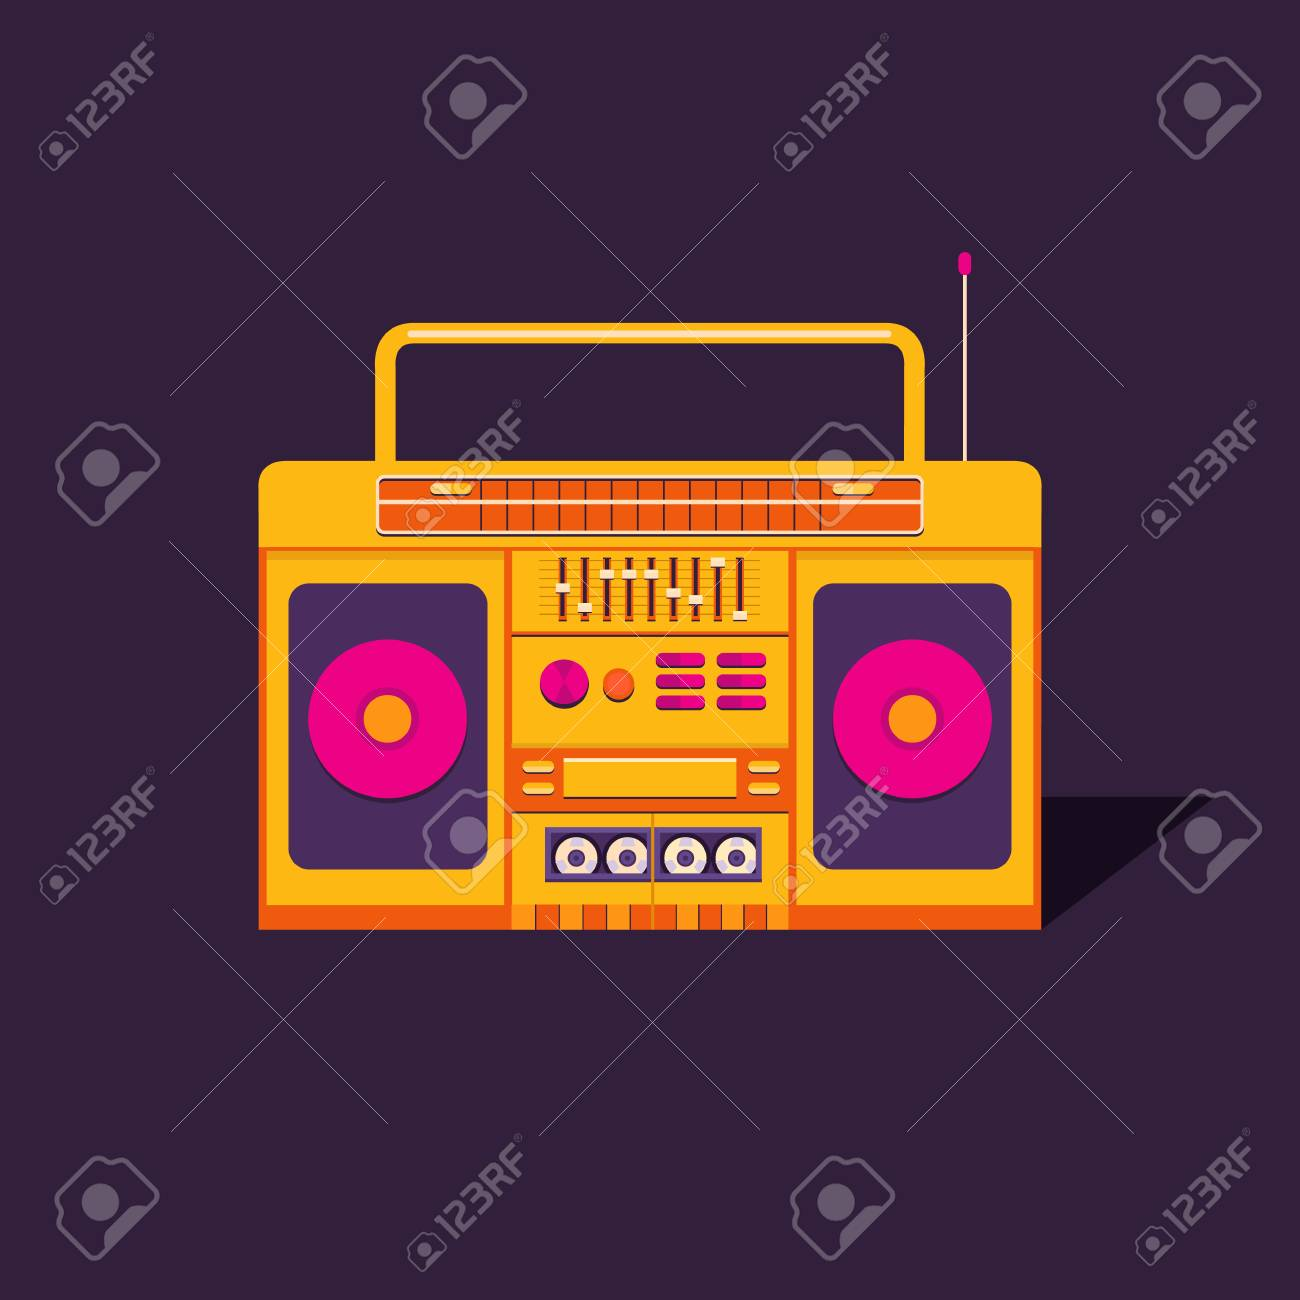 Illustration Of A Vintage Cassette Tape Recorder Nostalgia